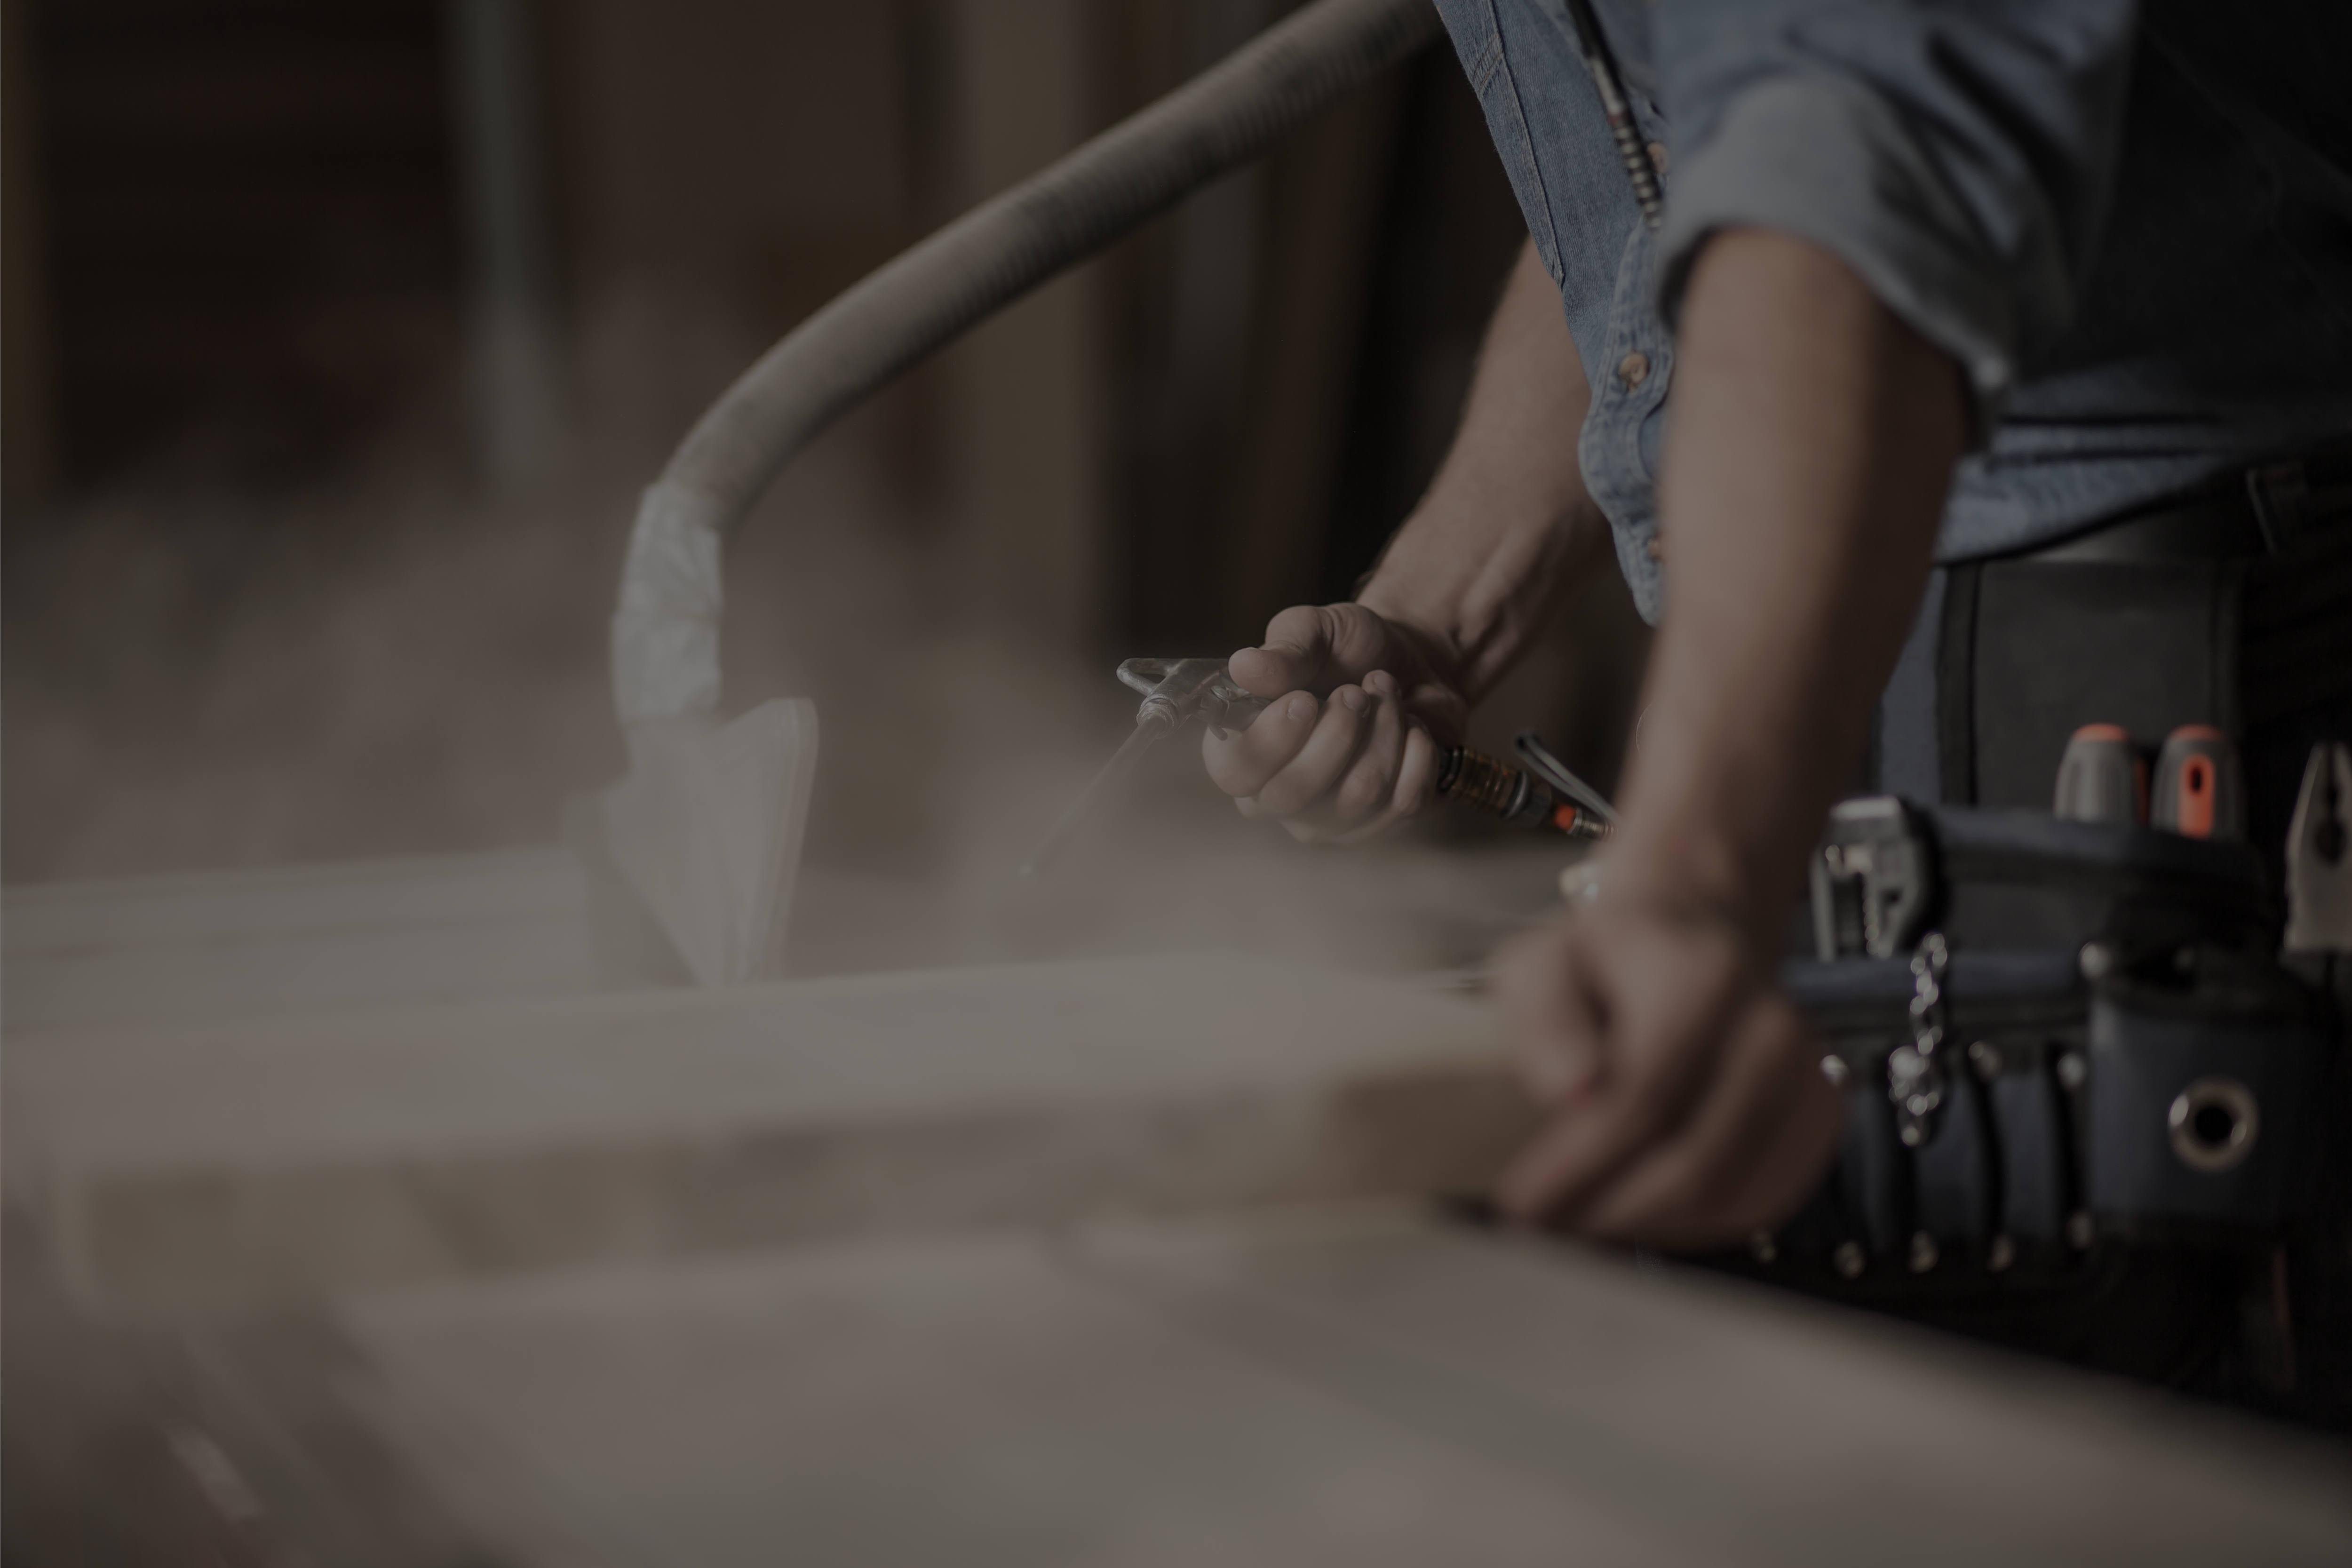 Wood Dust Exposure Leads To £8,000 Fine